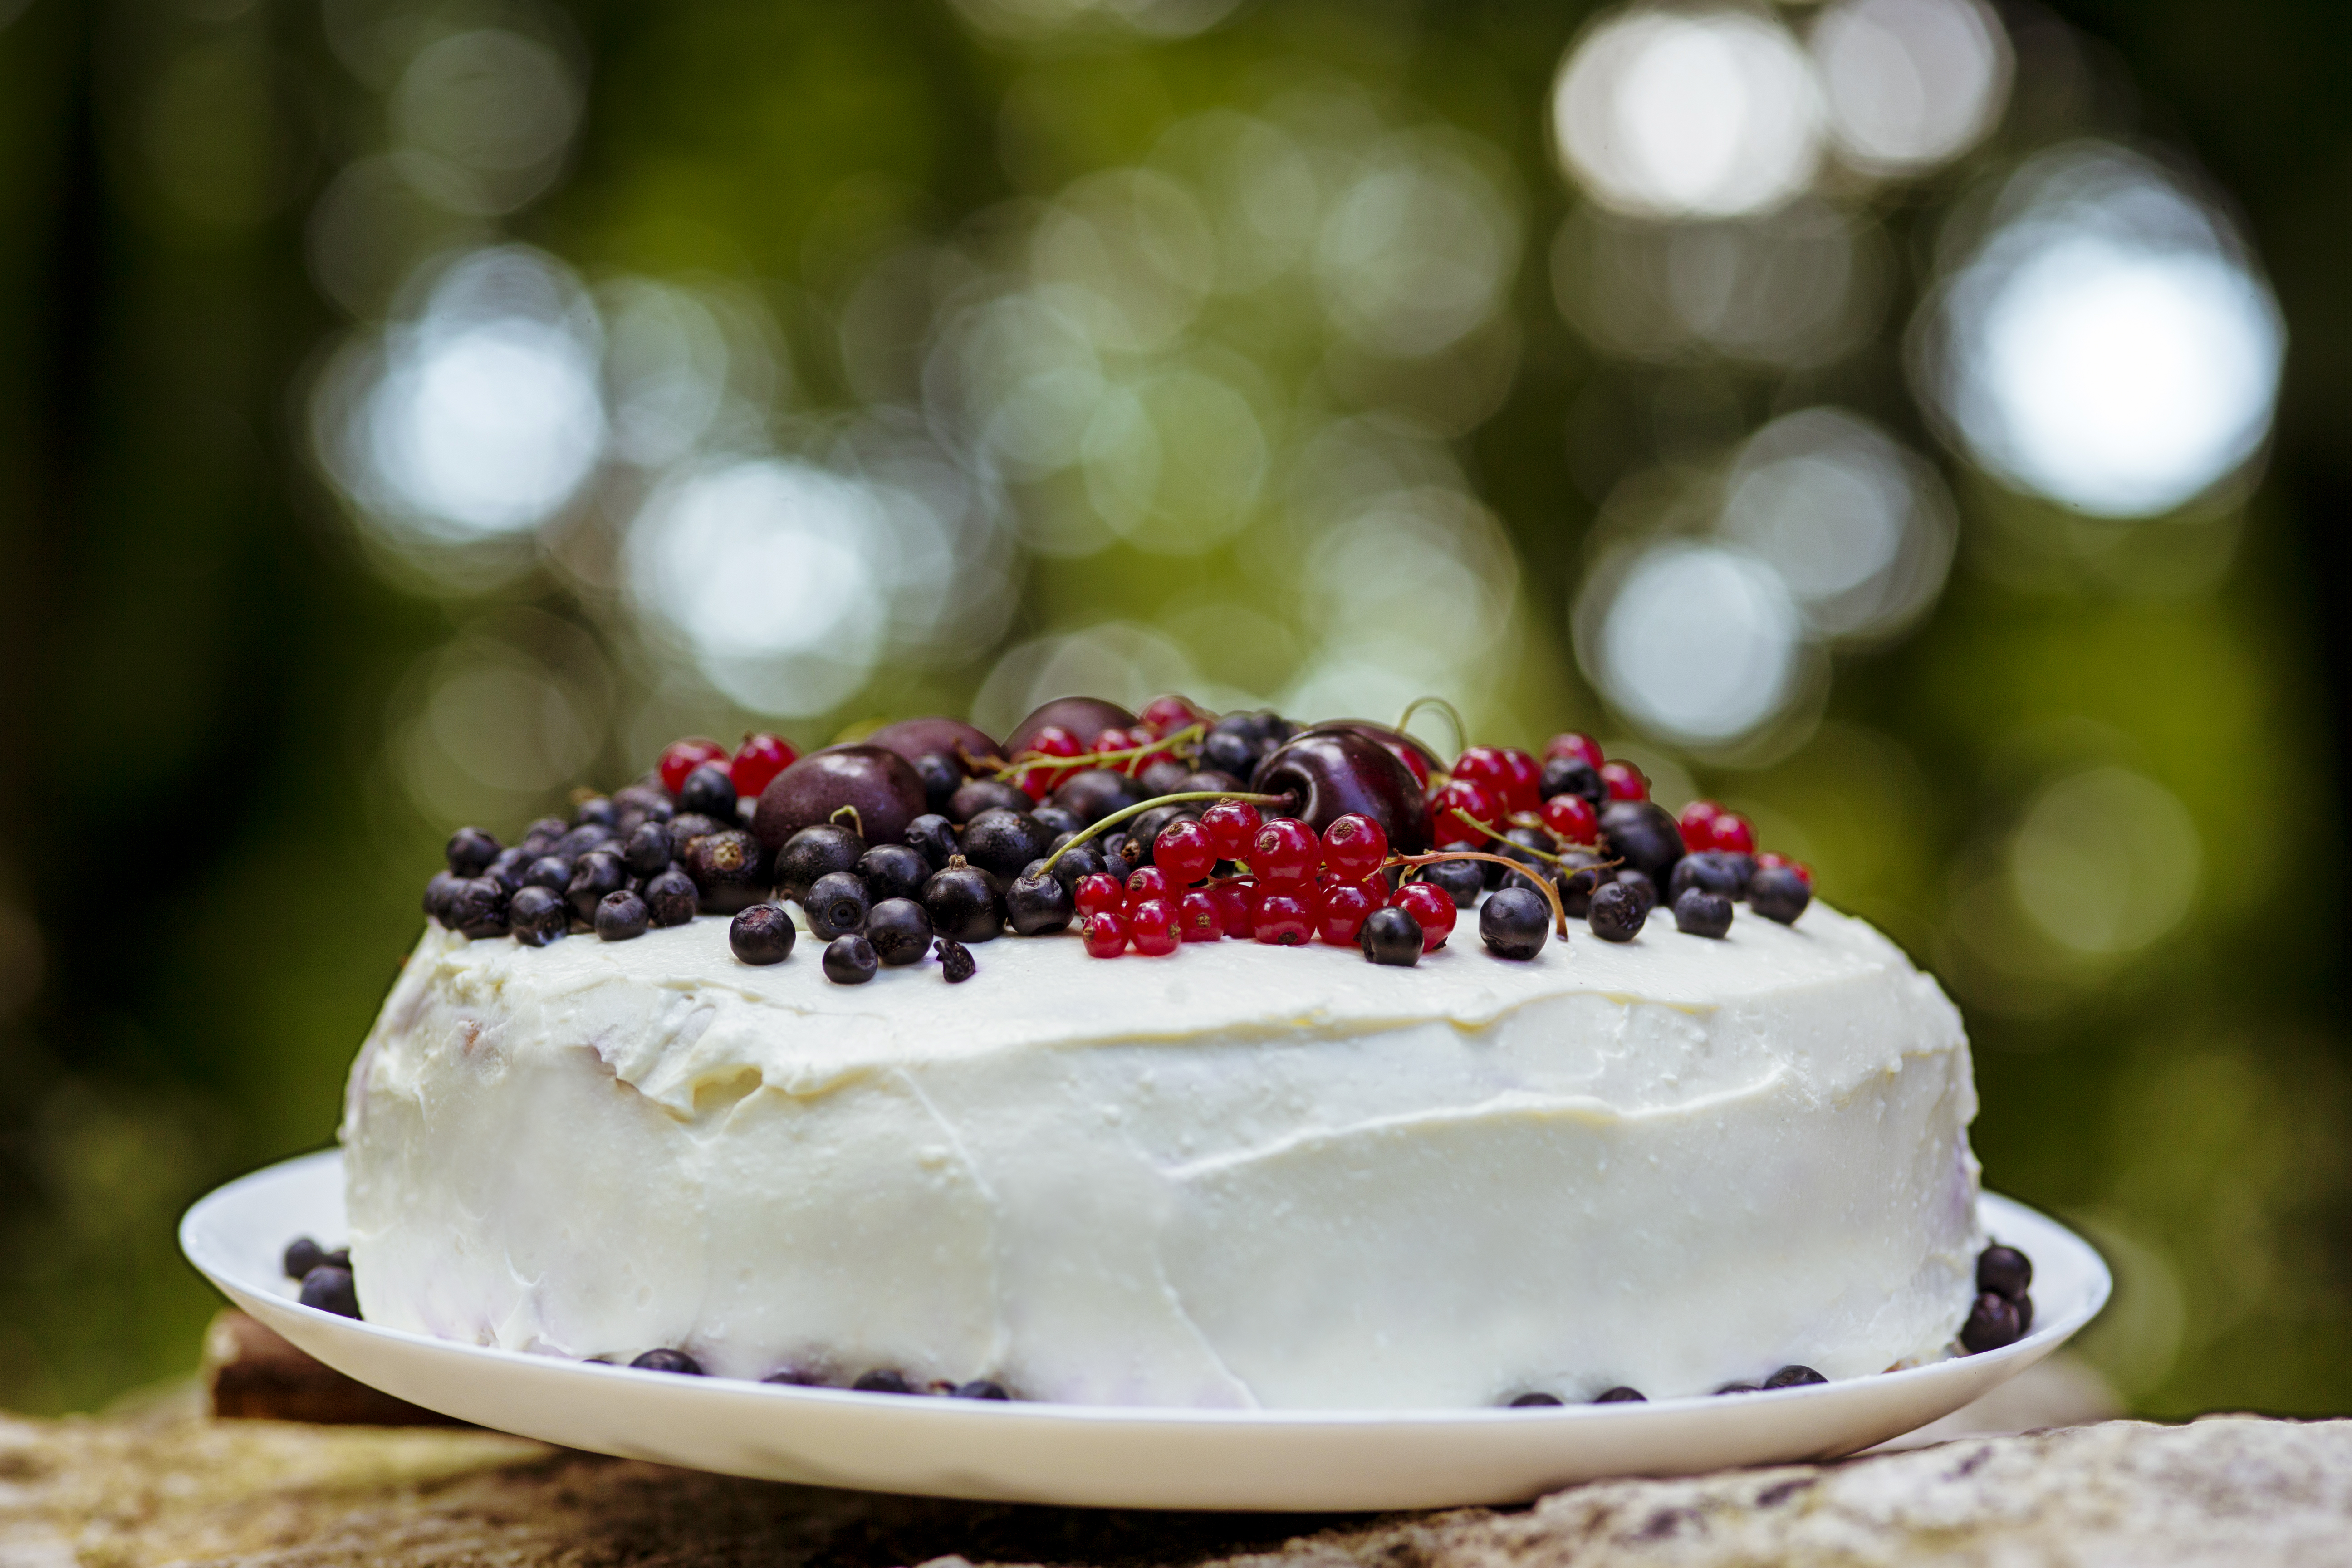 Fresh berry cake, Freshberries, Outdoors, Summer, Sweets, HQ Photo